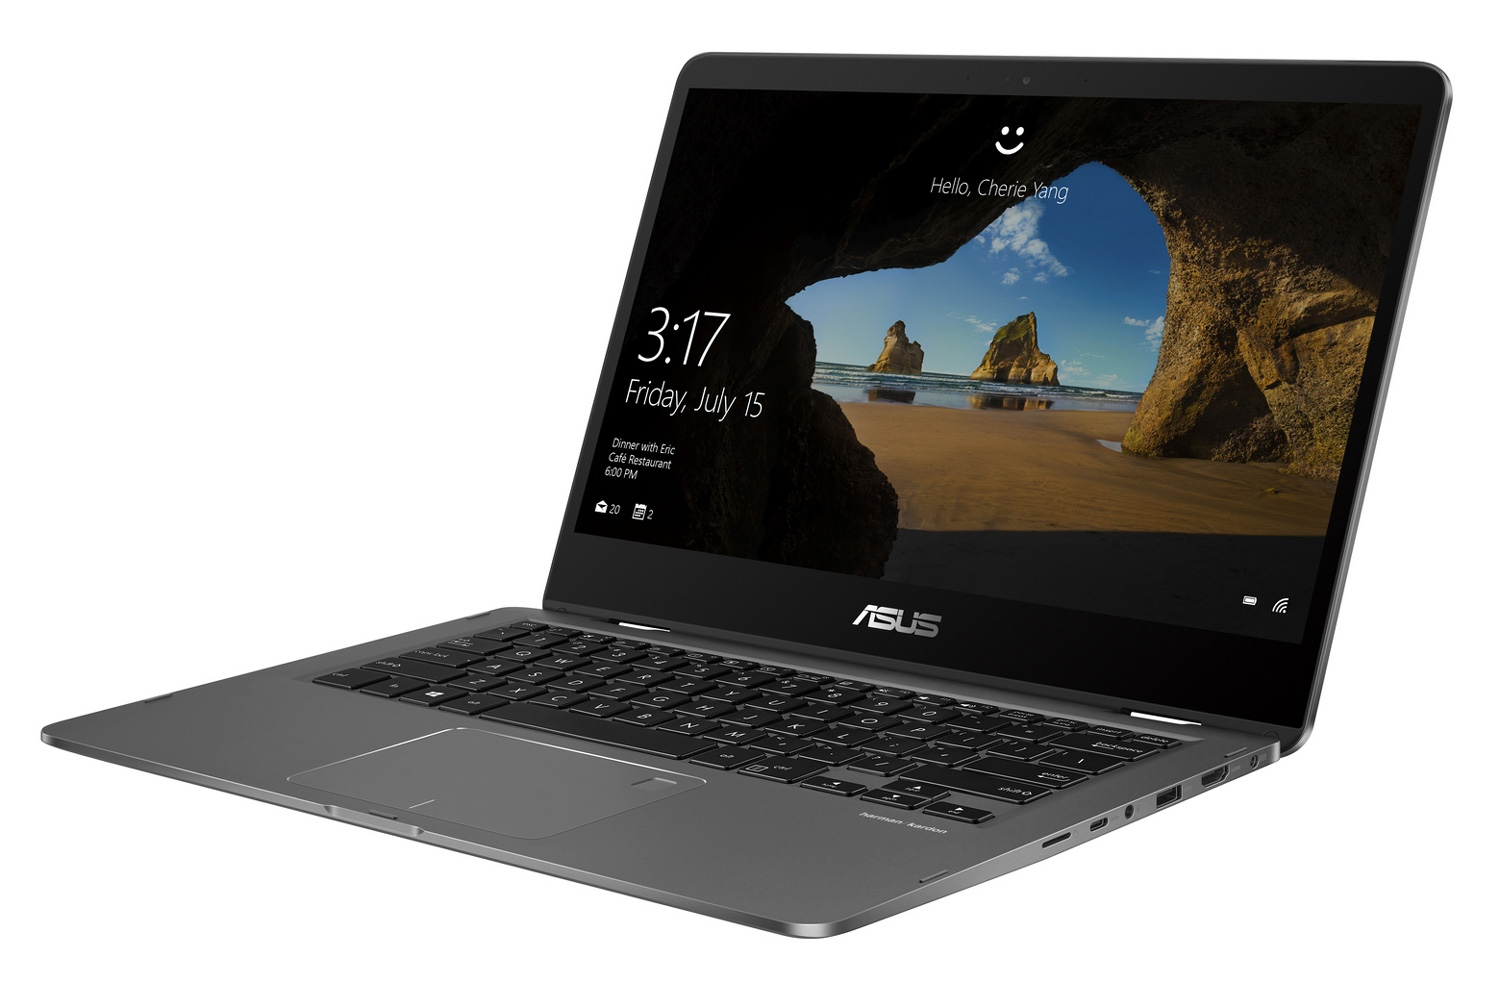 asus zenbook flip ux461ua e1023t achetez au meilleur prix. Black Bedroom Furniture Sets. Home Design Ideas